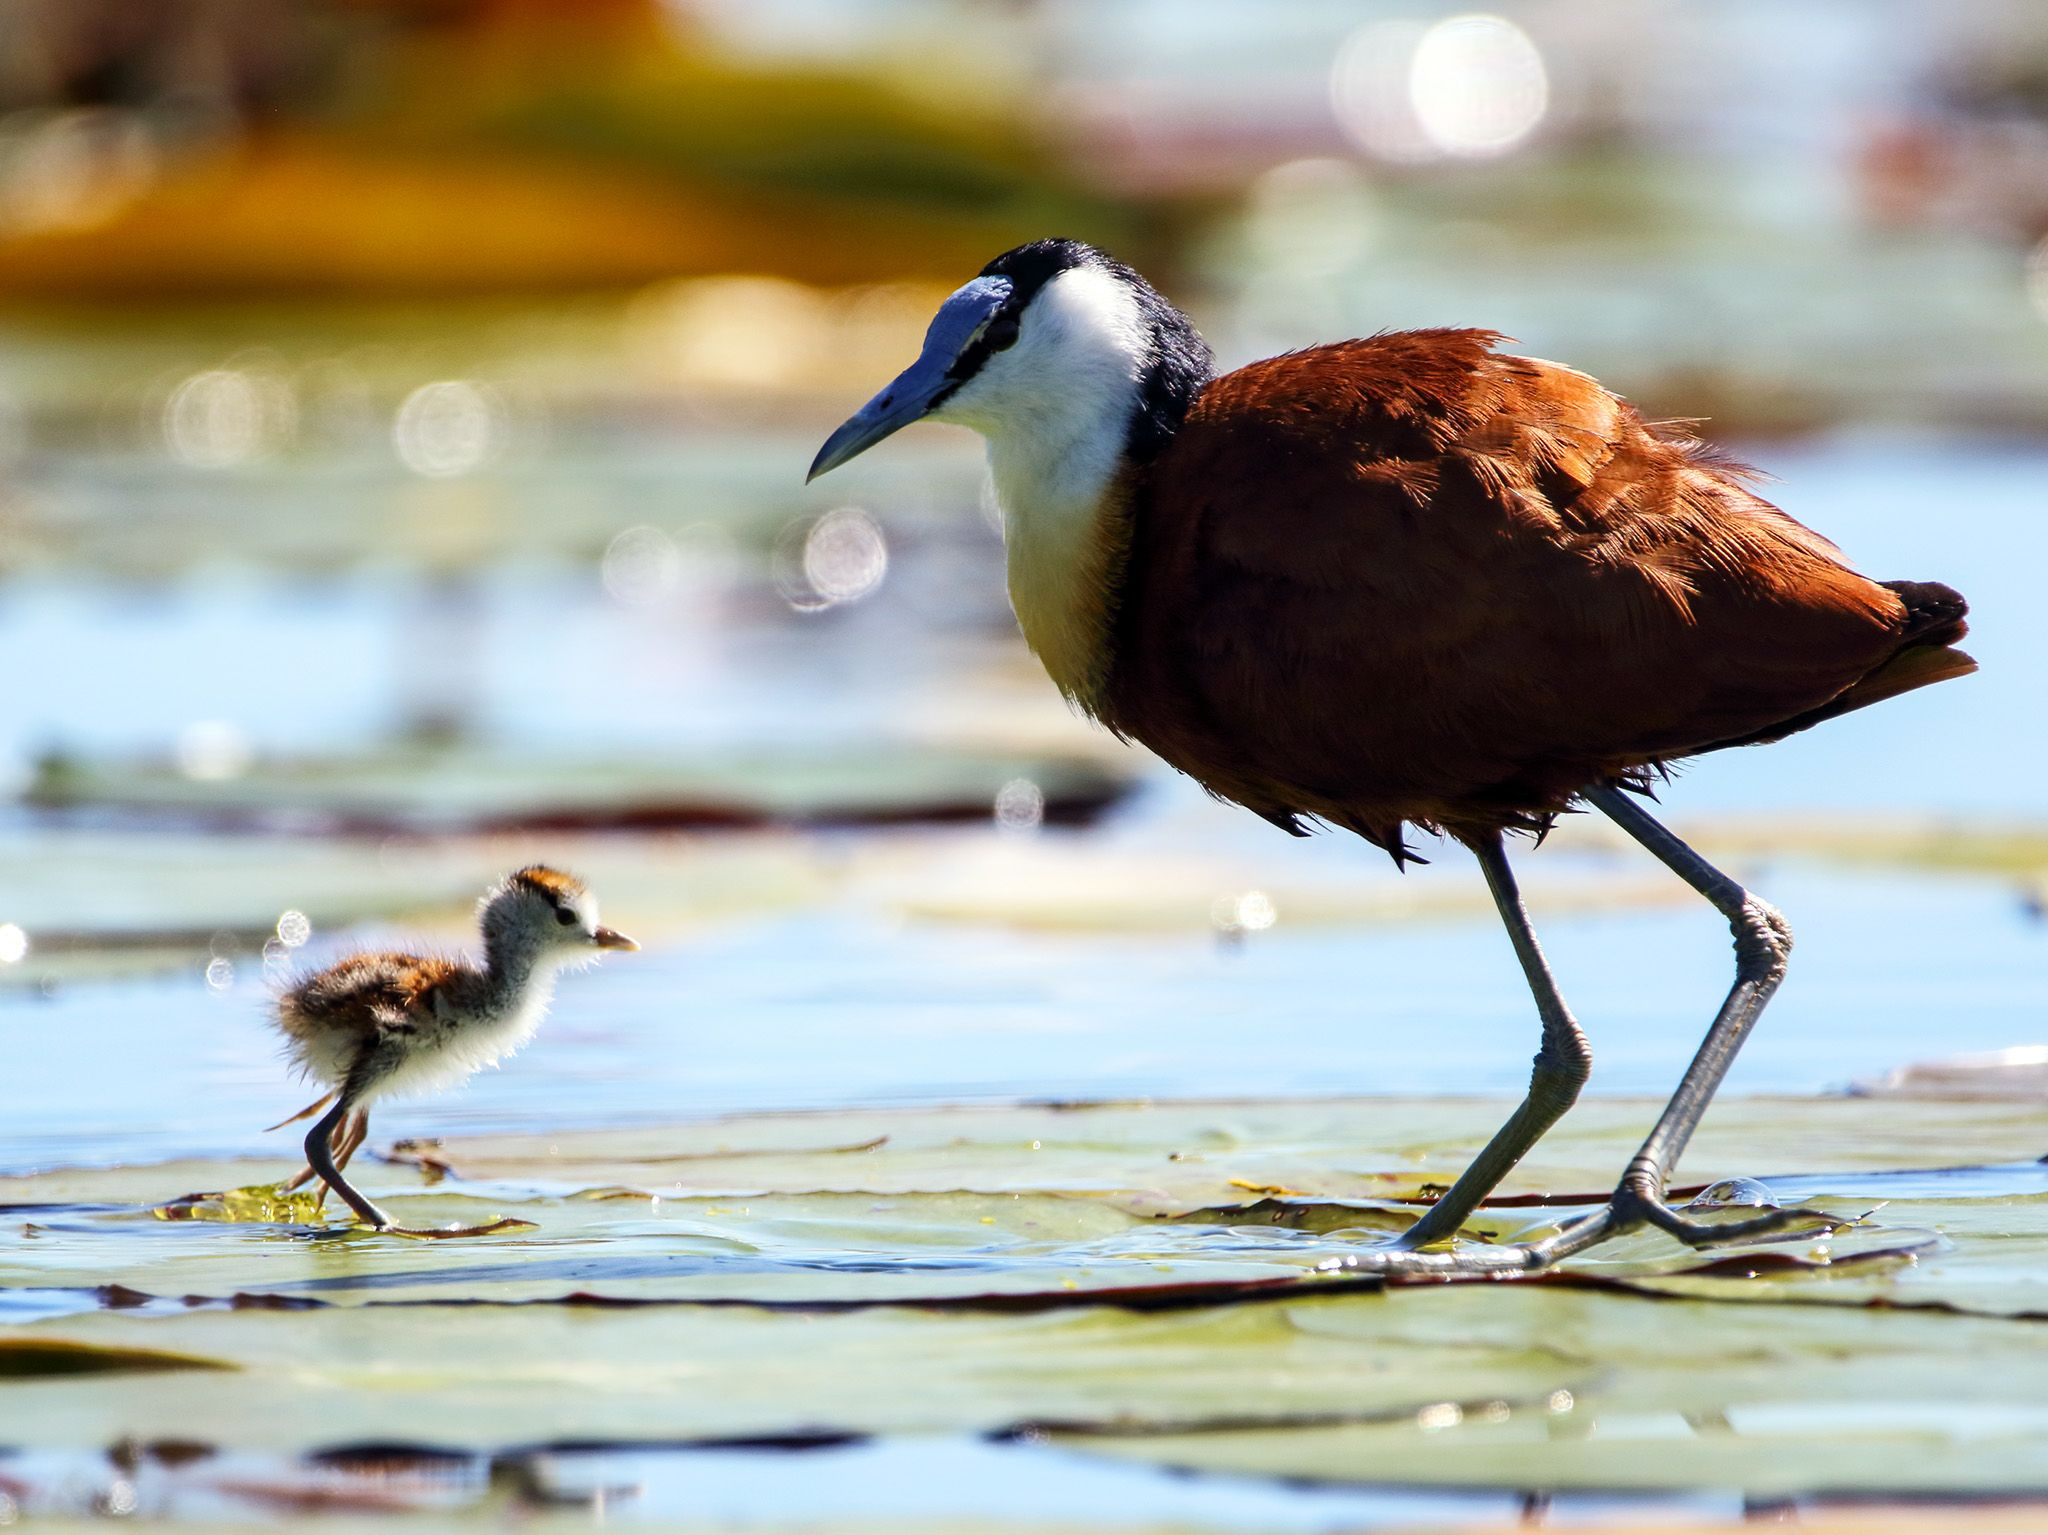 Botswana:  A male Jacana watches as its young chick crosses the mat of Lilly pads that cover one... [Foto del giorno - November 2018]